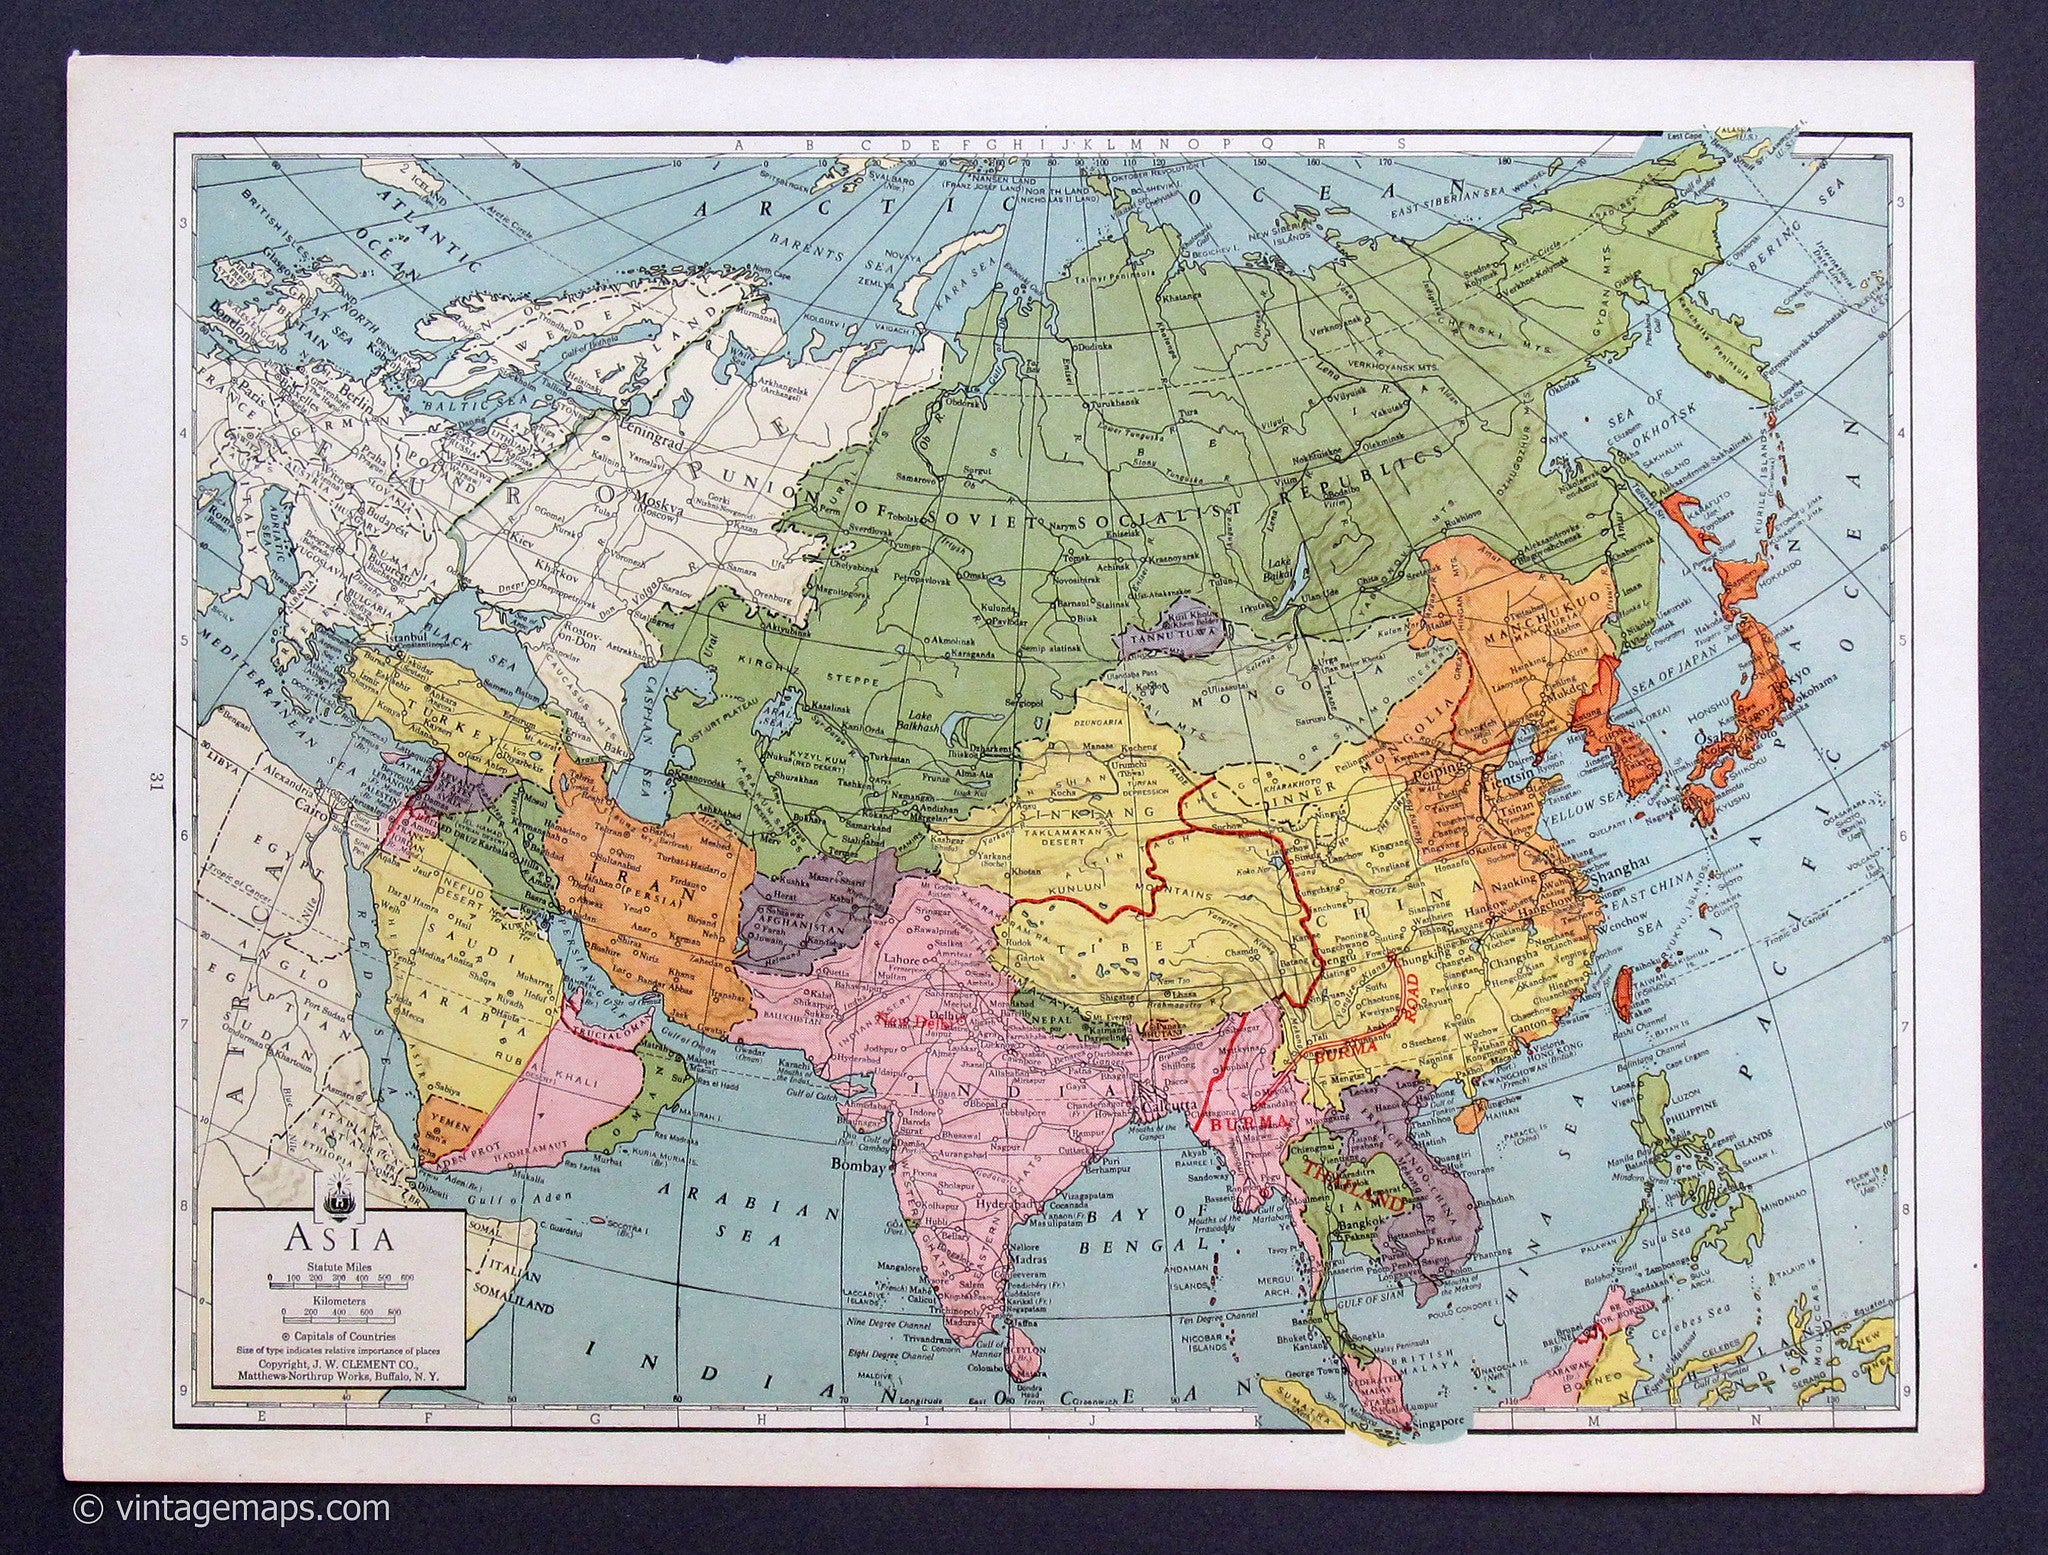 Map Of Asia After Ww2.Asia 1943